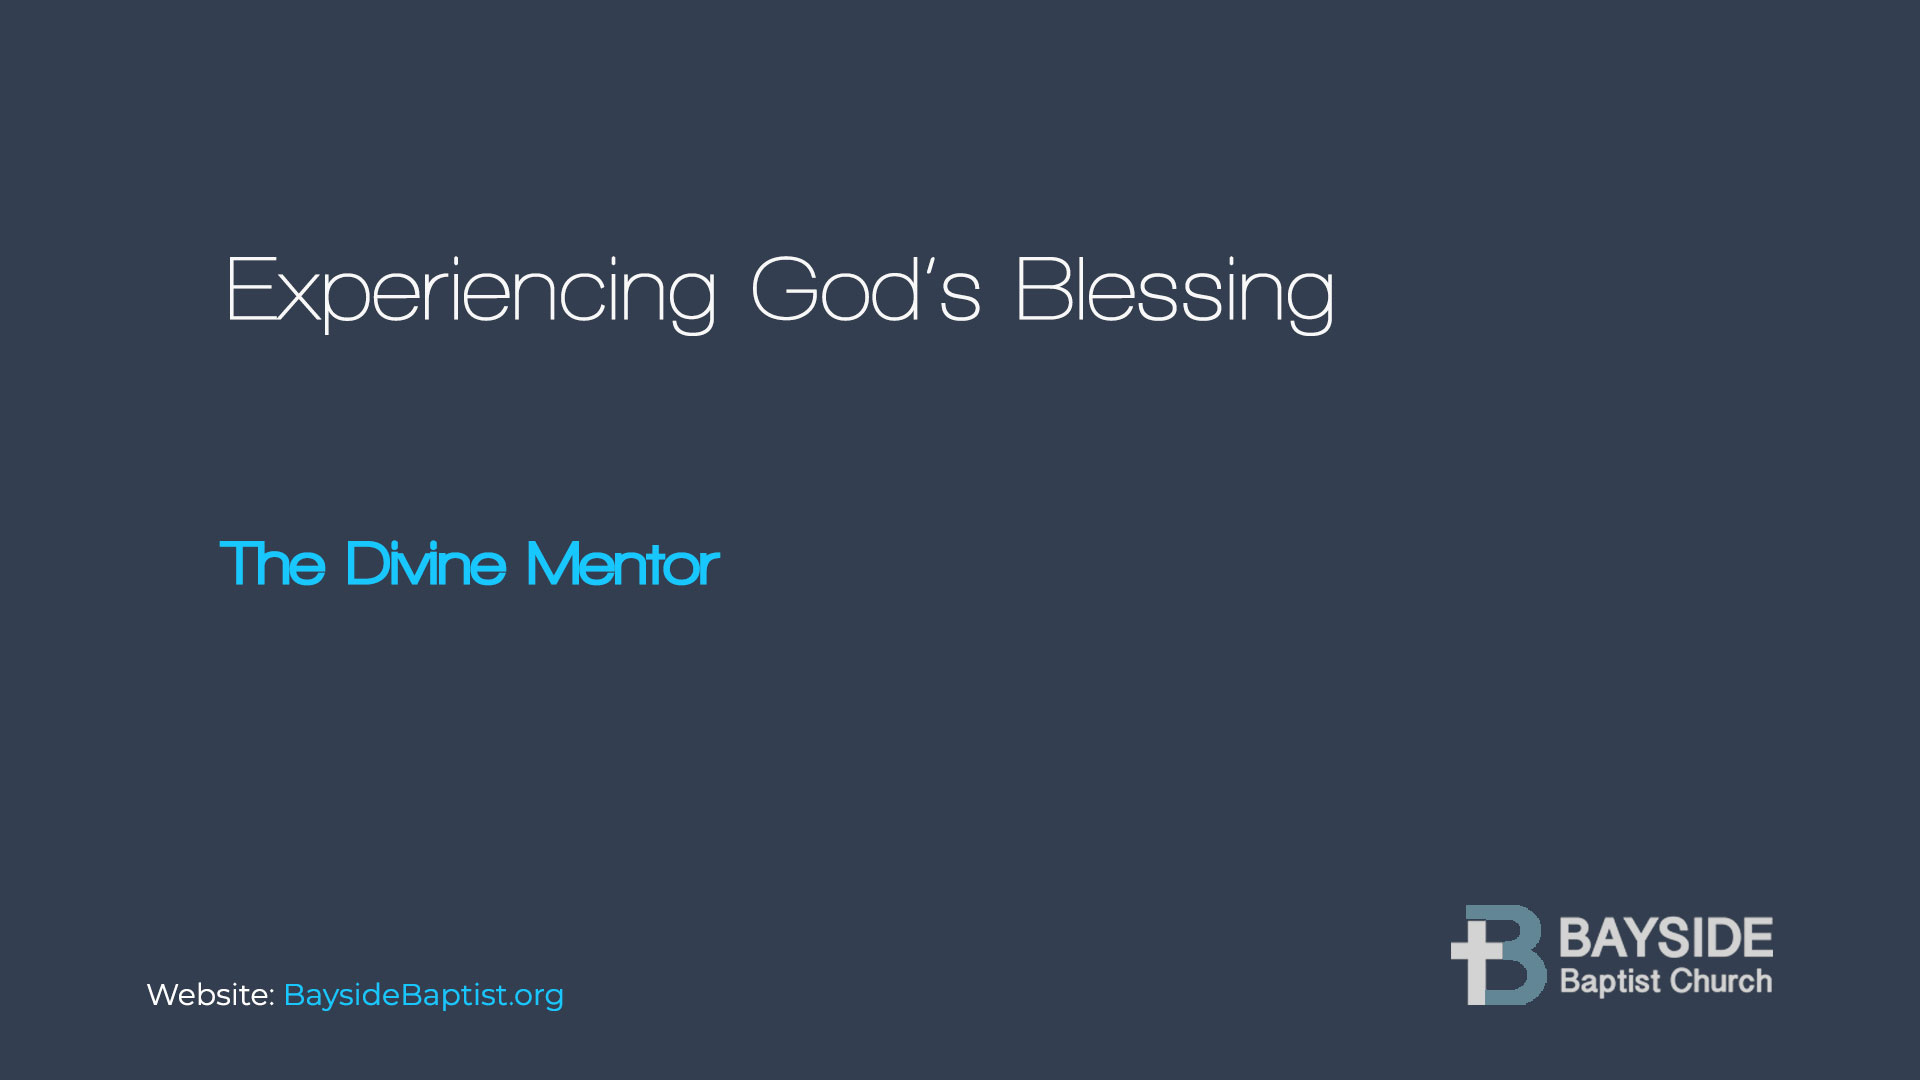 Experiencing God's Blessing Image